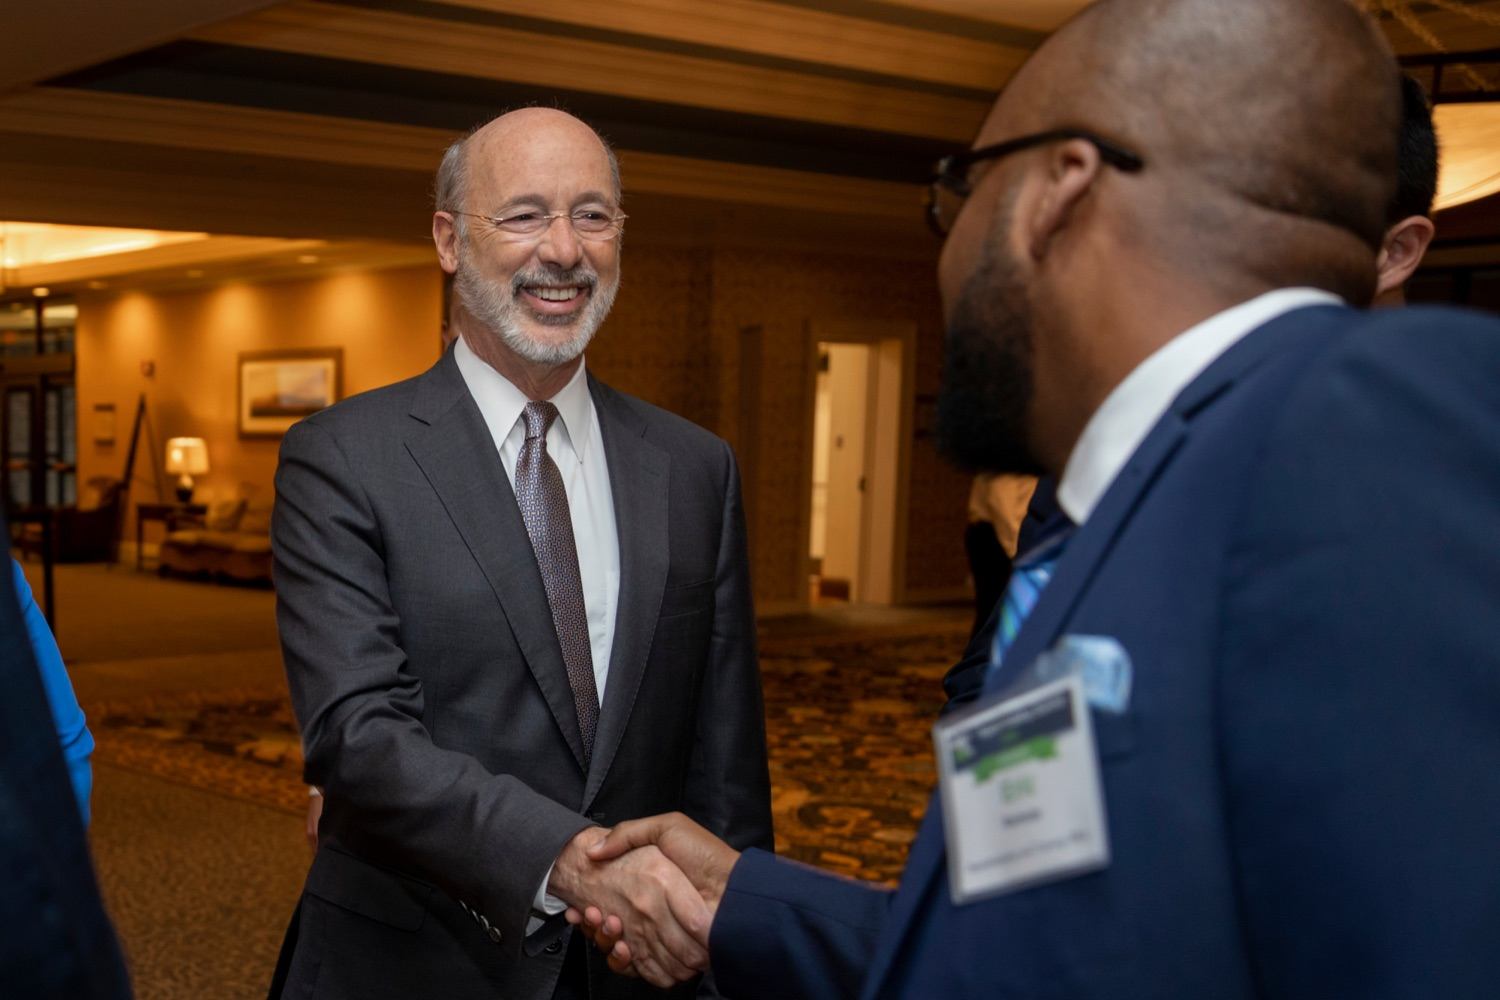 "<a href=""https://filesource.wostreaming.net/commonwealthofpa/photo/17520_LandI_Apprenticeships_NK_003.JPG"" target=""_blank"">⇣ Download Photo<br></a>Pennsylvania Governor Tom Wolf shakes hands with Eric Ramsay, director of Apprenticeship and Training Office, during the 2019 Pennsylvania Apprenticeship Summit at Hershey Lodge on Thursday, October 31, 2019."